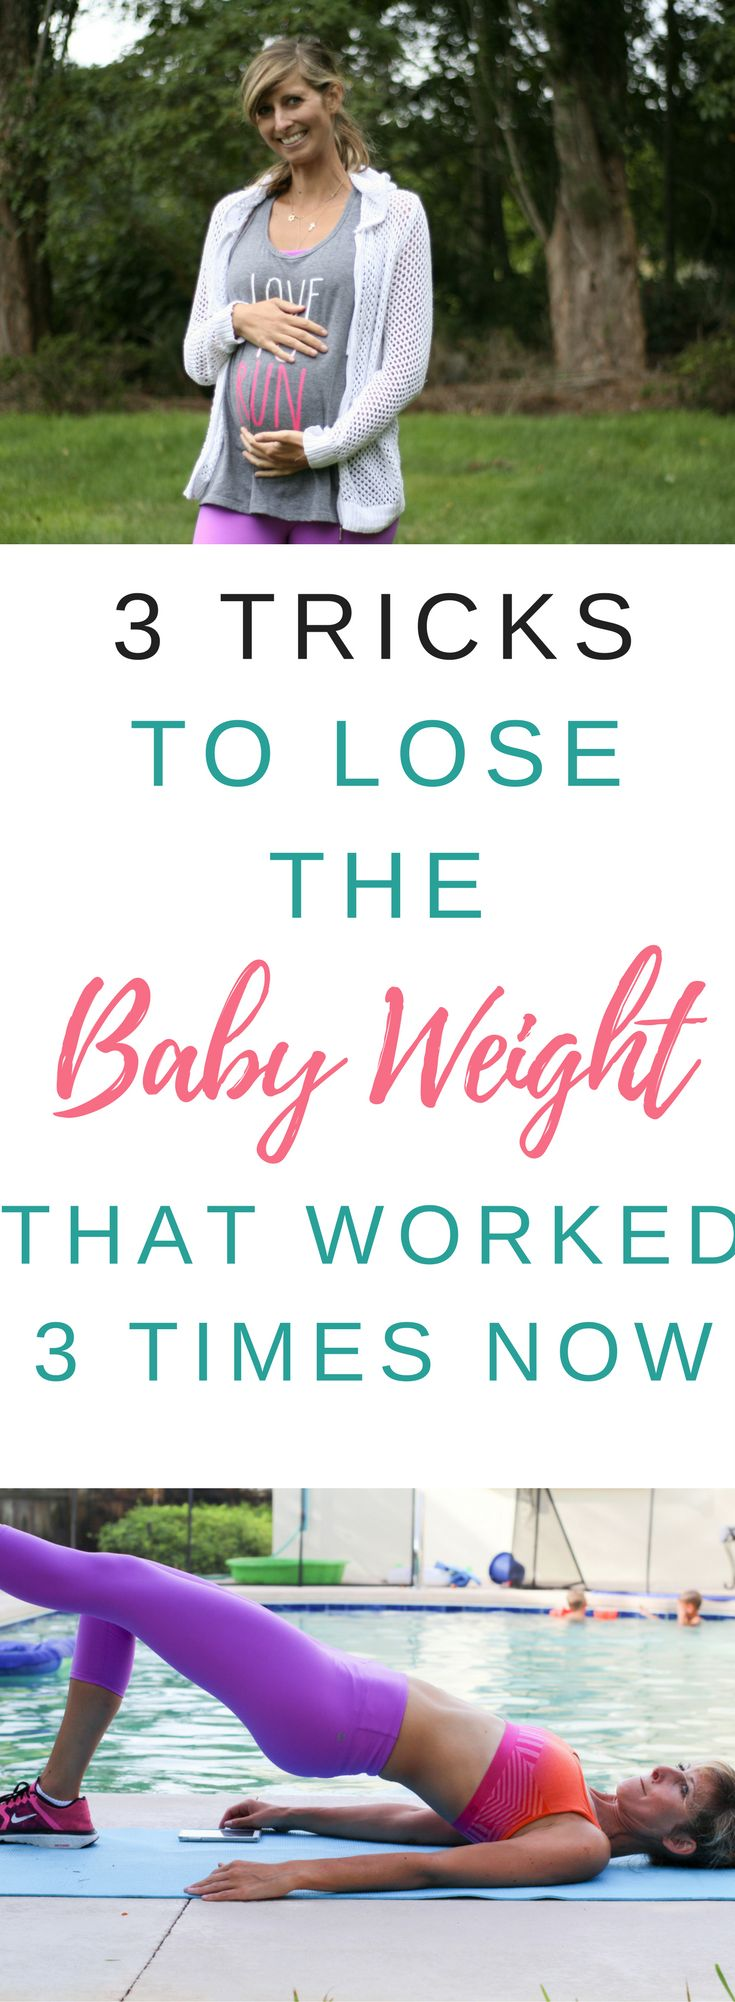 3 tricks i use to lose the baby weight that worked three times now